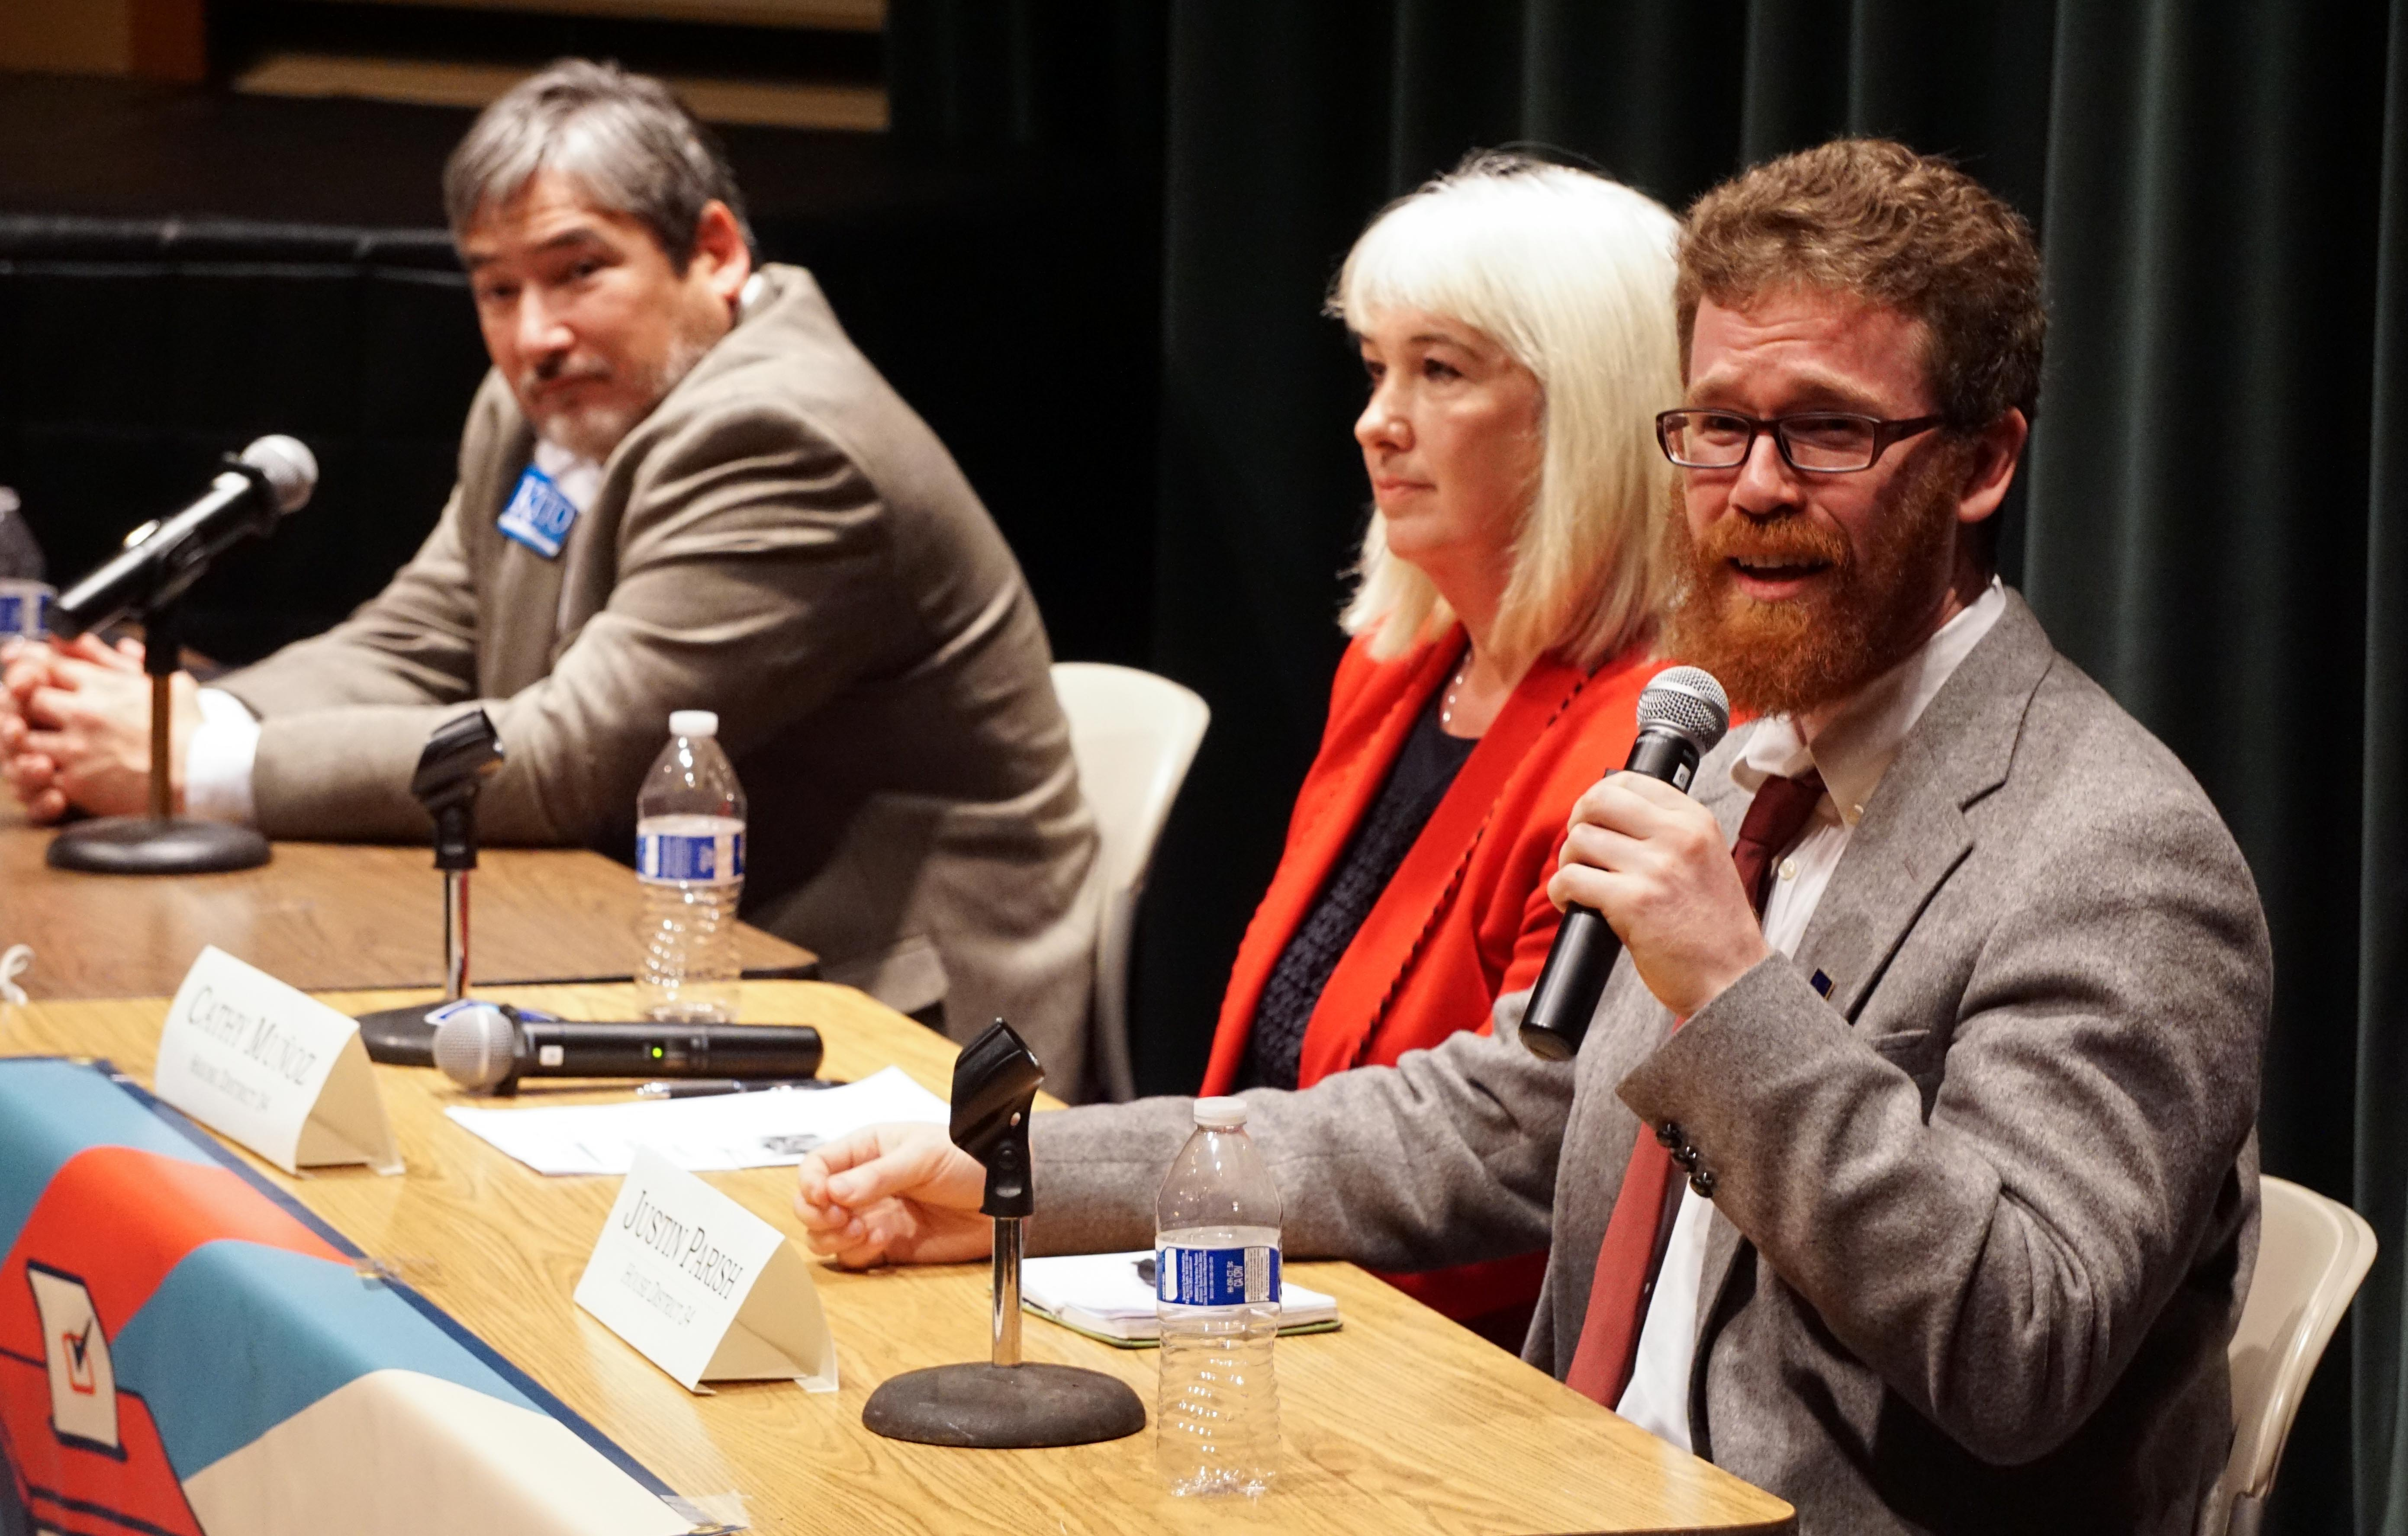 Justin Parish, Cathy Munoz and Sam Kito III at Juneau Votes Statehouse Debate 2016 10 13